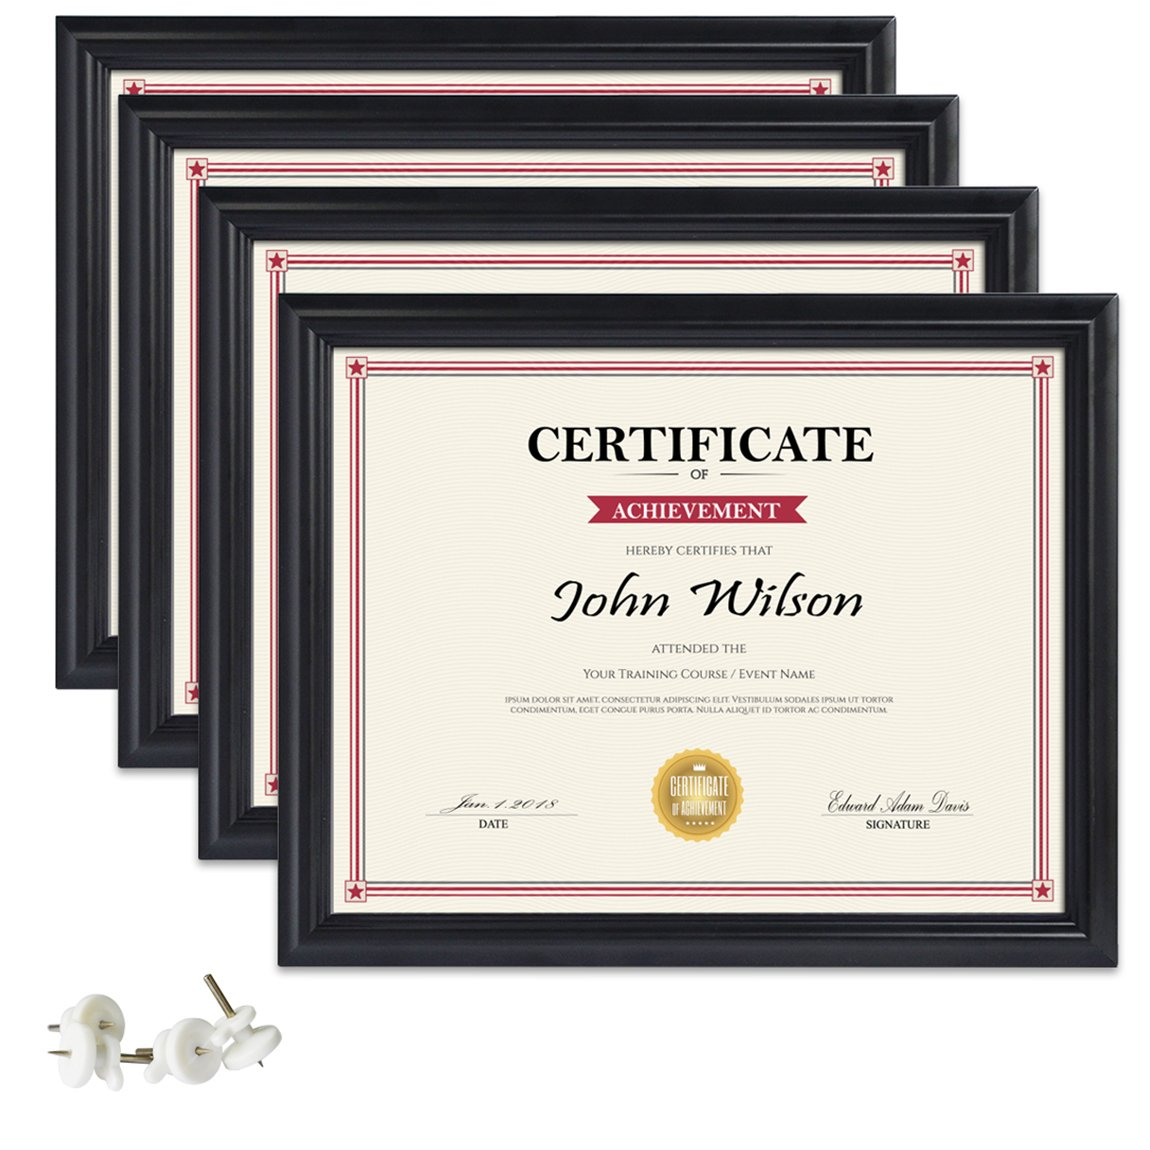 PETAFLOP 8.5x11 Picture Frames 4pcs Black Diploma Frame Set for Certificate Document Protection Wall and Tabletop Mounting Type by PETAFLOP